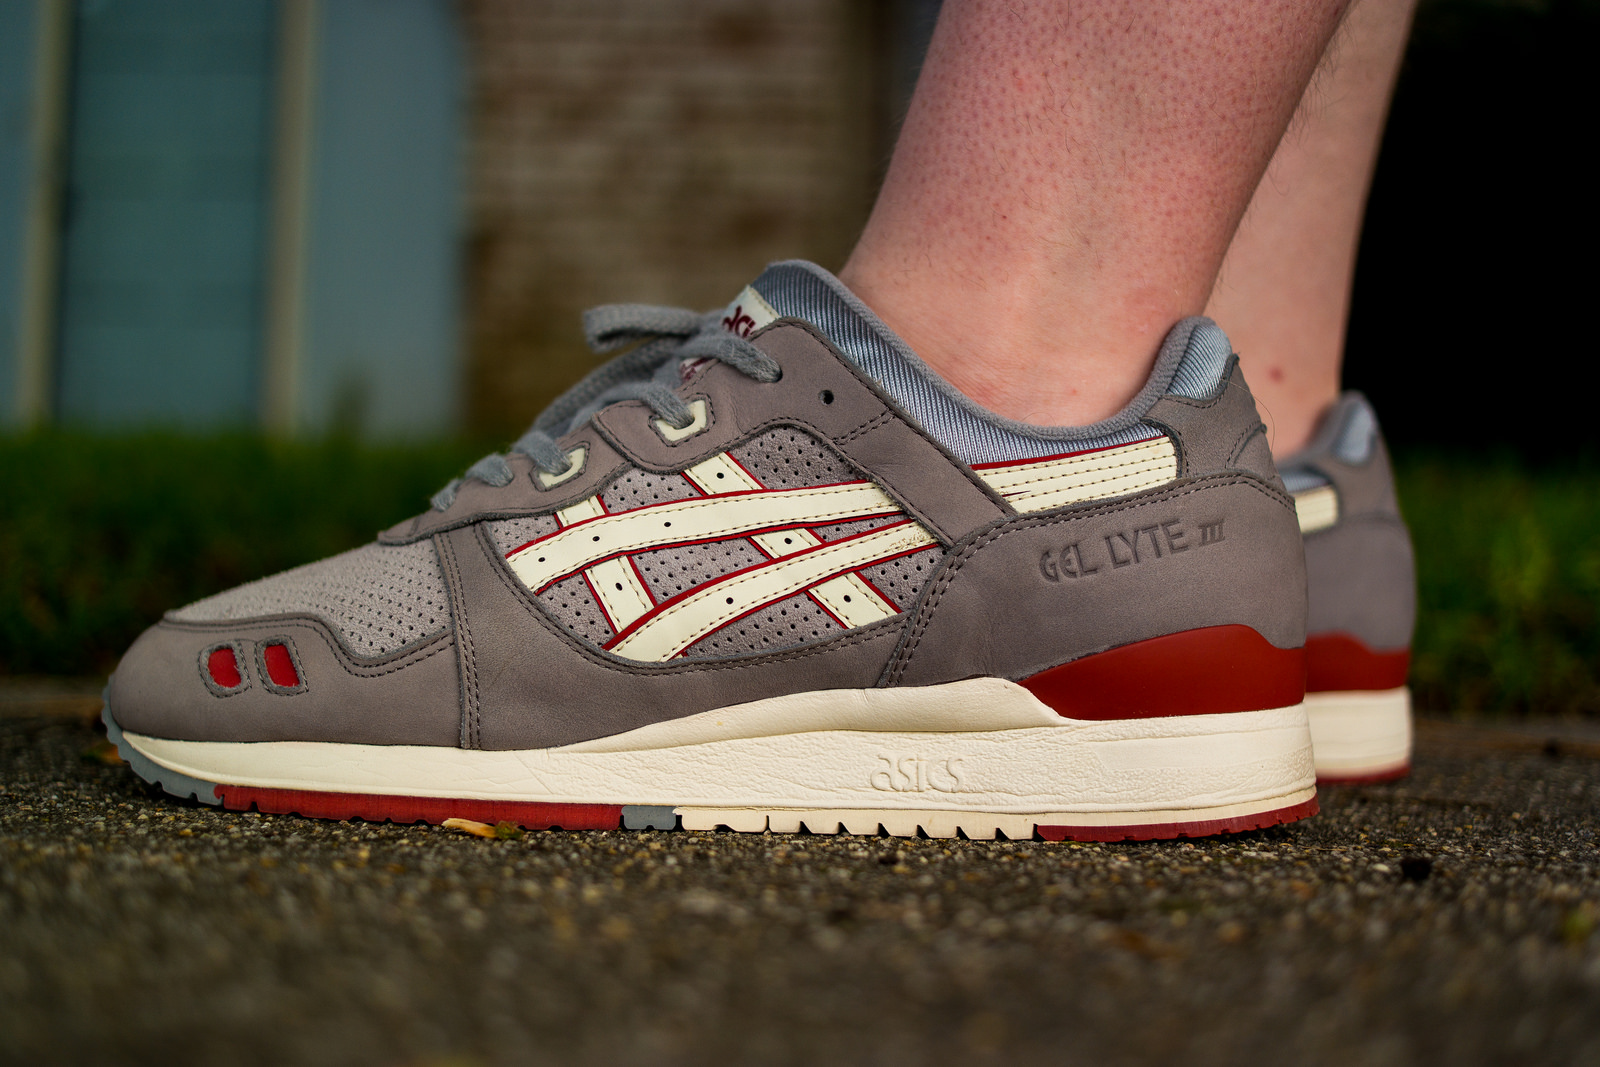 Highs and Lows x ASICS Gel Lyte III